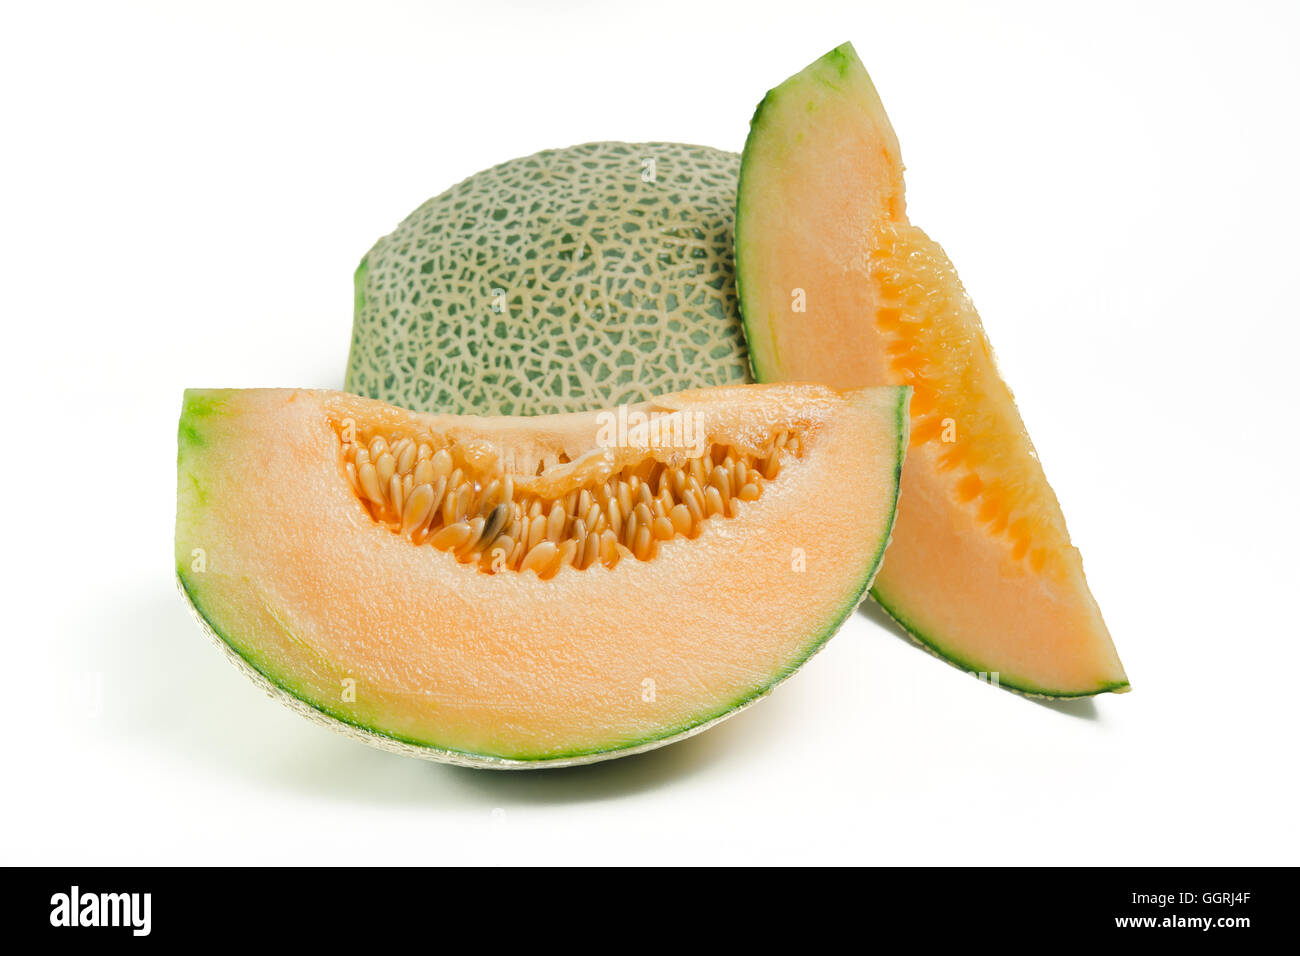 Sliced melon with seed on white (Other names are cantelope, cantaloup, honeydew, Crenshaw, casaba,  Persian melon, - Stock Image